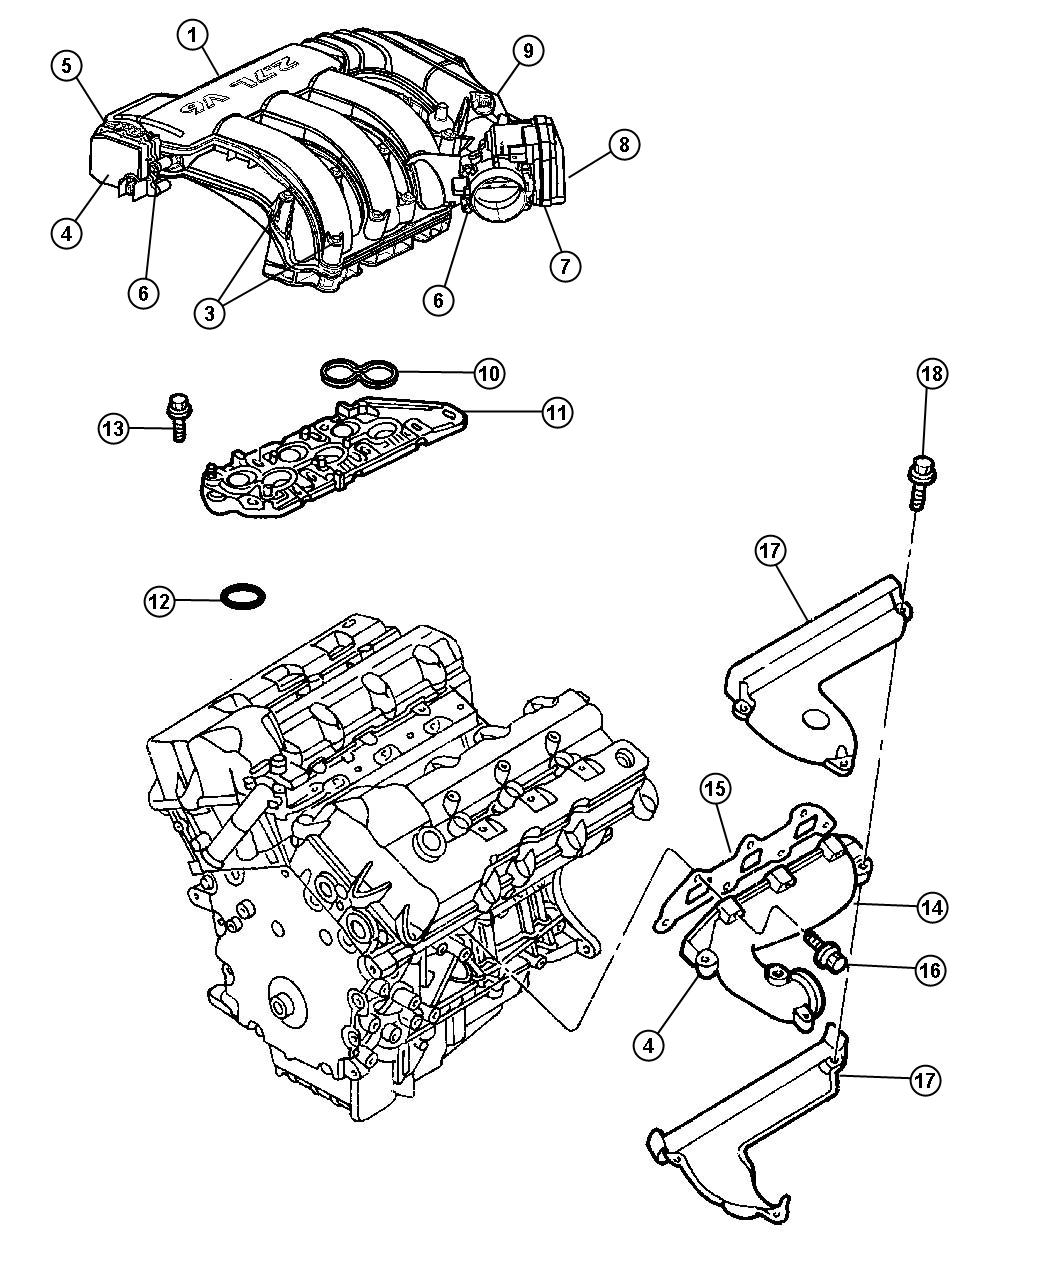 Dodge Caliber Wiring Harness Diagram